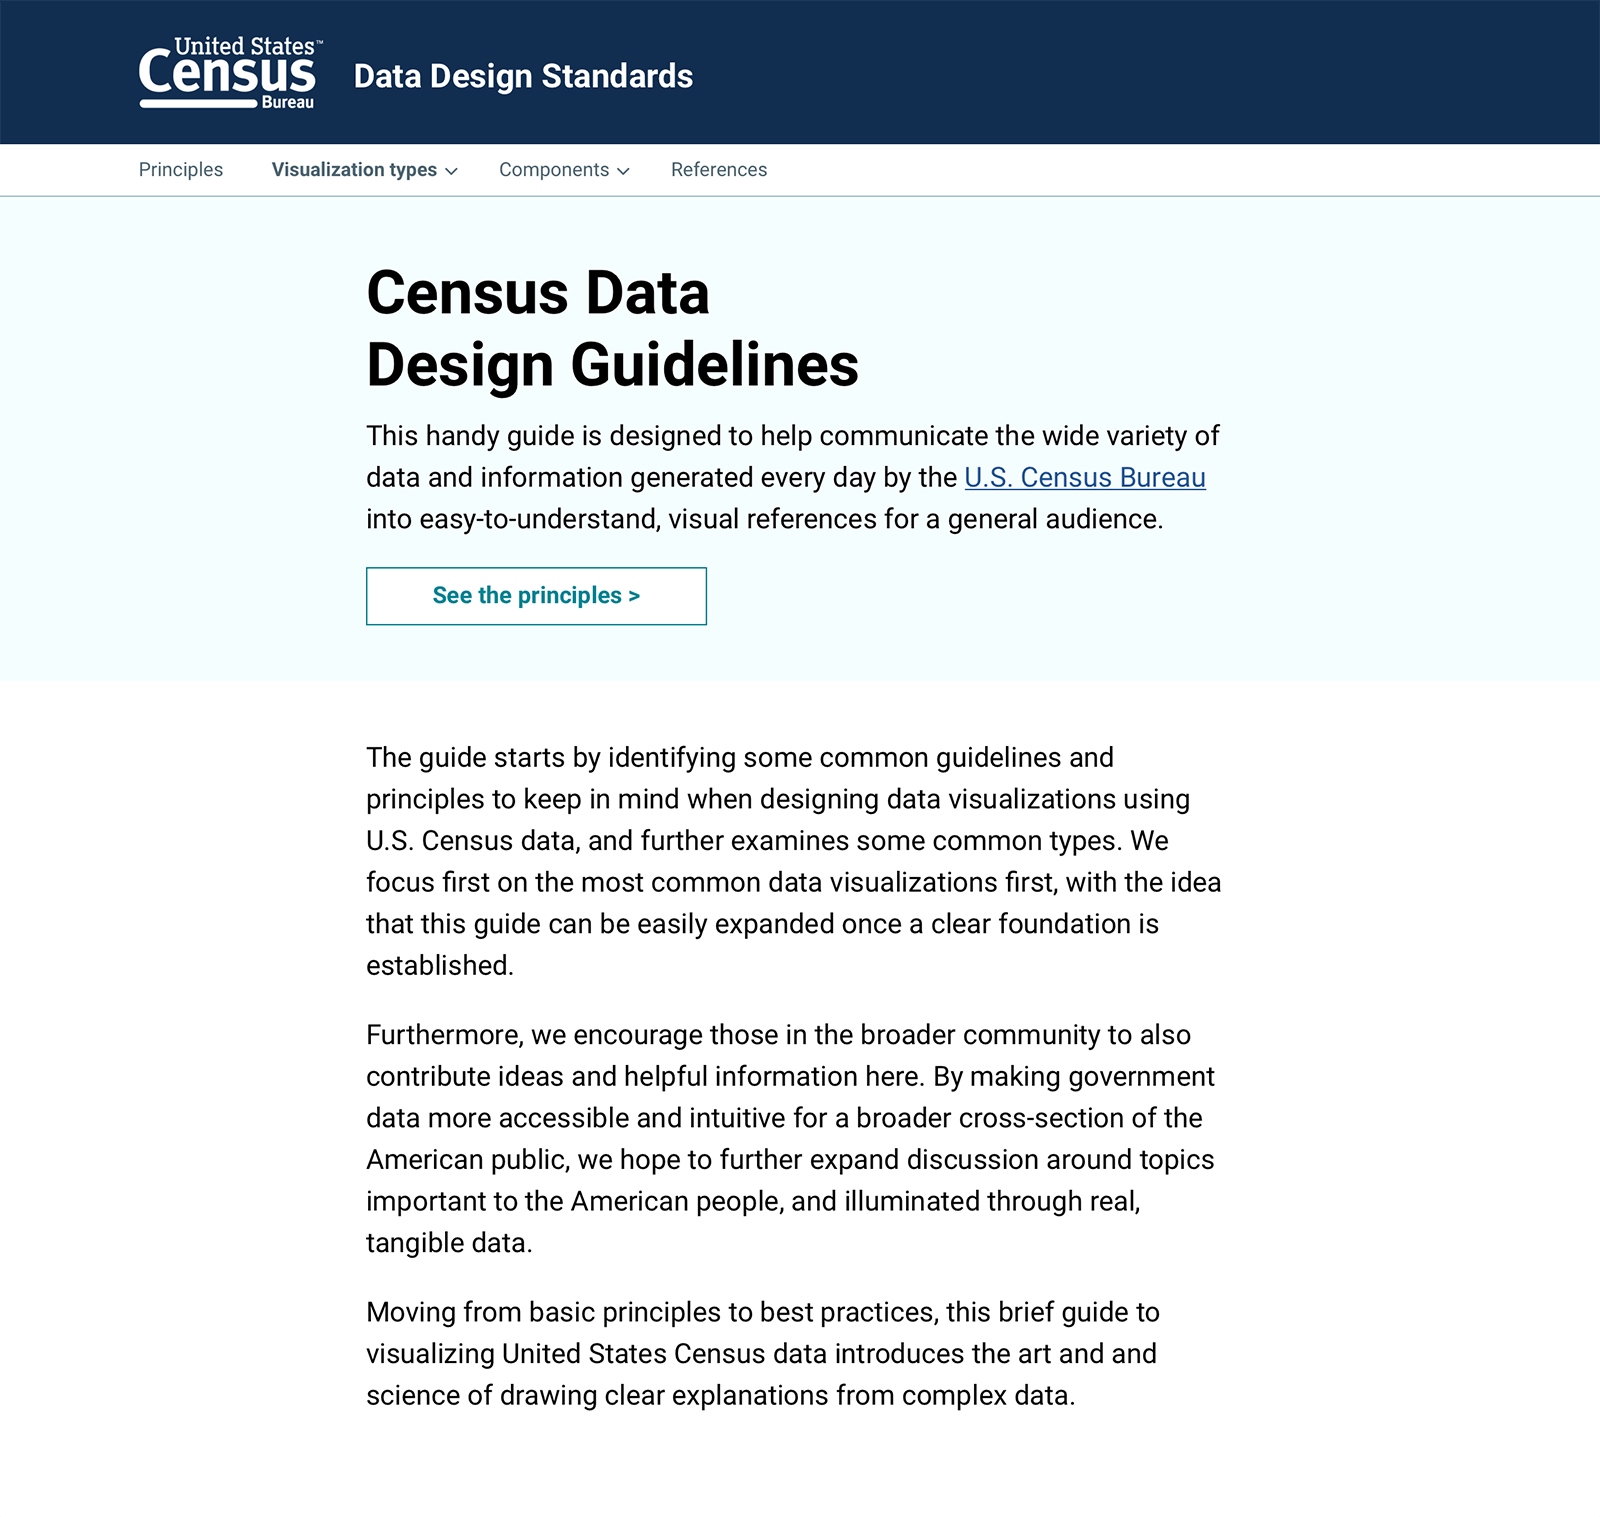 U.S. Census data visualizstion guidelines home page